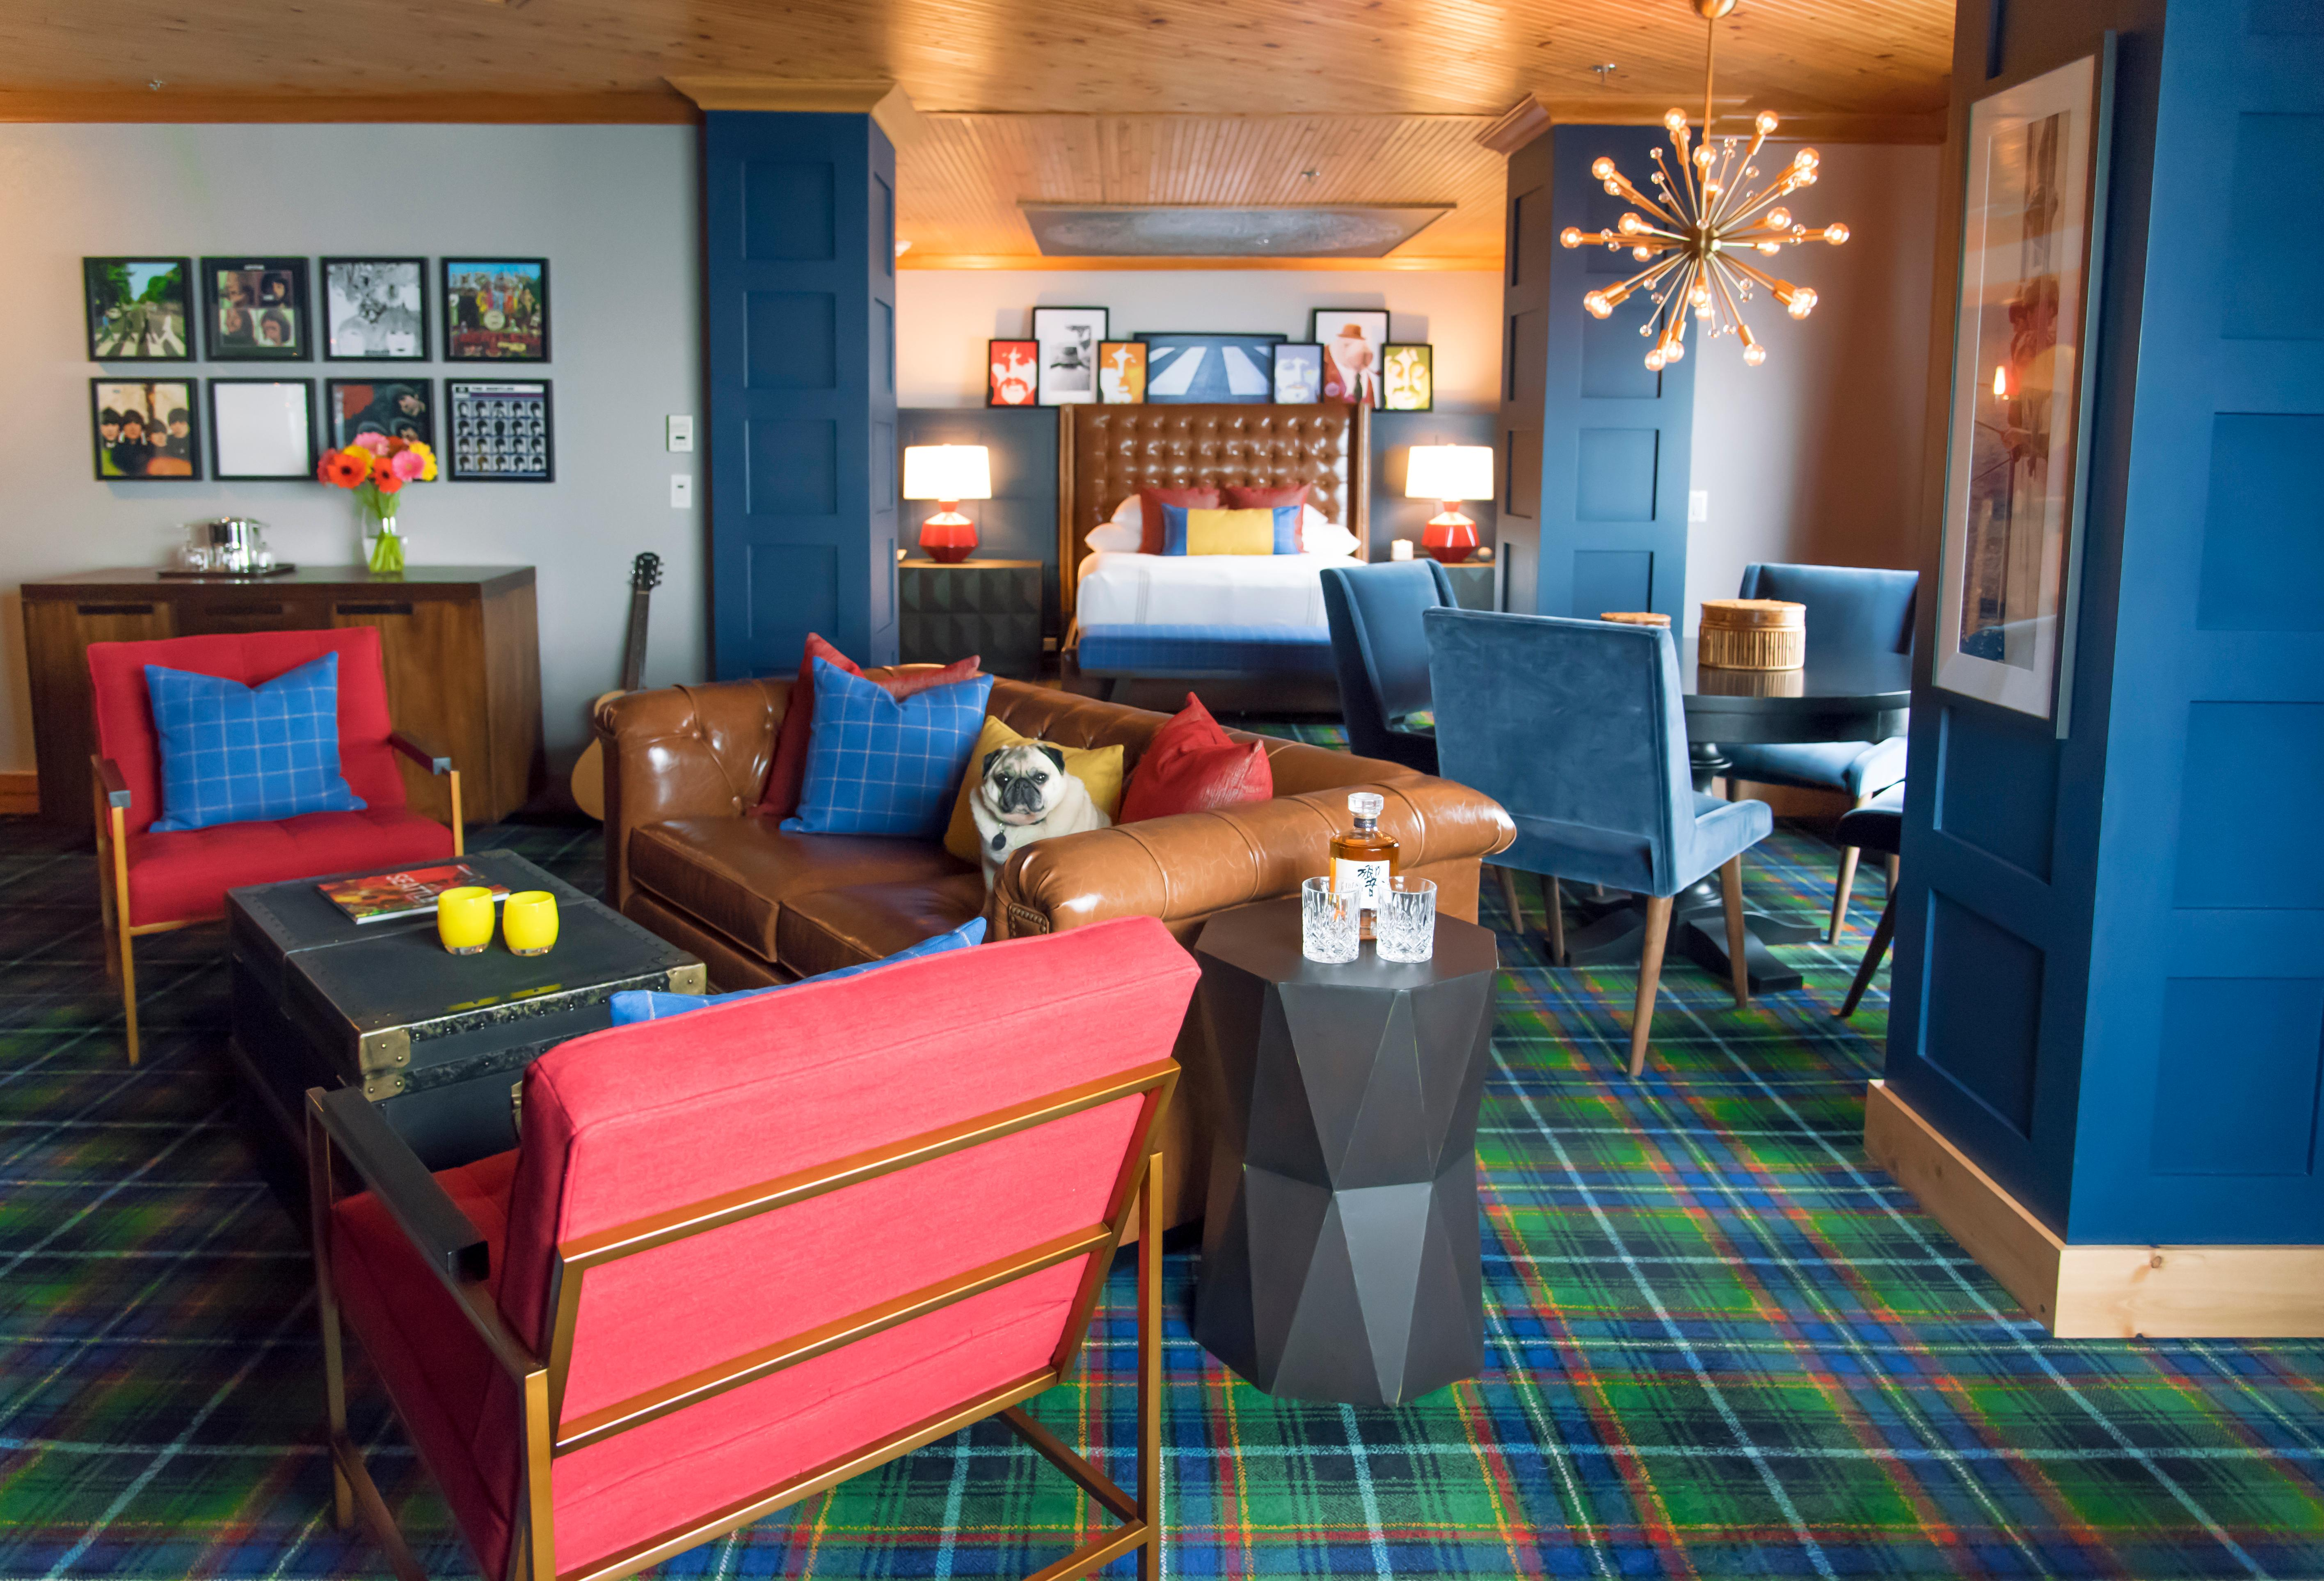 "The Beatles Suite. Guests can stay in the very same room The Beatles once stayed in, where the iconic ""fishing out the window"" photo was captured of the band fishing out the window, in The Edgewater's famous Beatles Suite. The suite includes fascinating portraits, memorabilia, Beatles history and music. With contemporary elements of dark metals, white glass, leather, and designer lighting, this is the ultimate entertainment suite for music lovers. The iconic Beatles Suite, which has long been a tribute to the hotel's famed guests, received a design refresh in 2018, complete with new Beatles memorabilia, turntables, records, and much more for the ultimate fan to indulge in. (Image courtesy of Edgewater Hotel)"